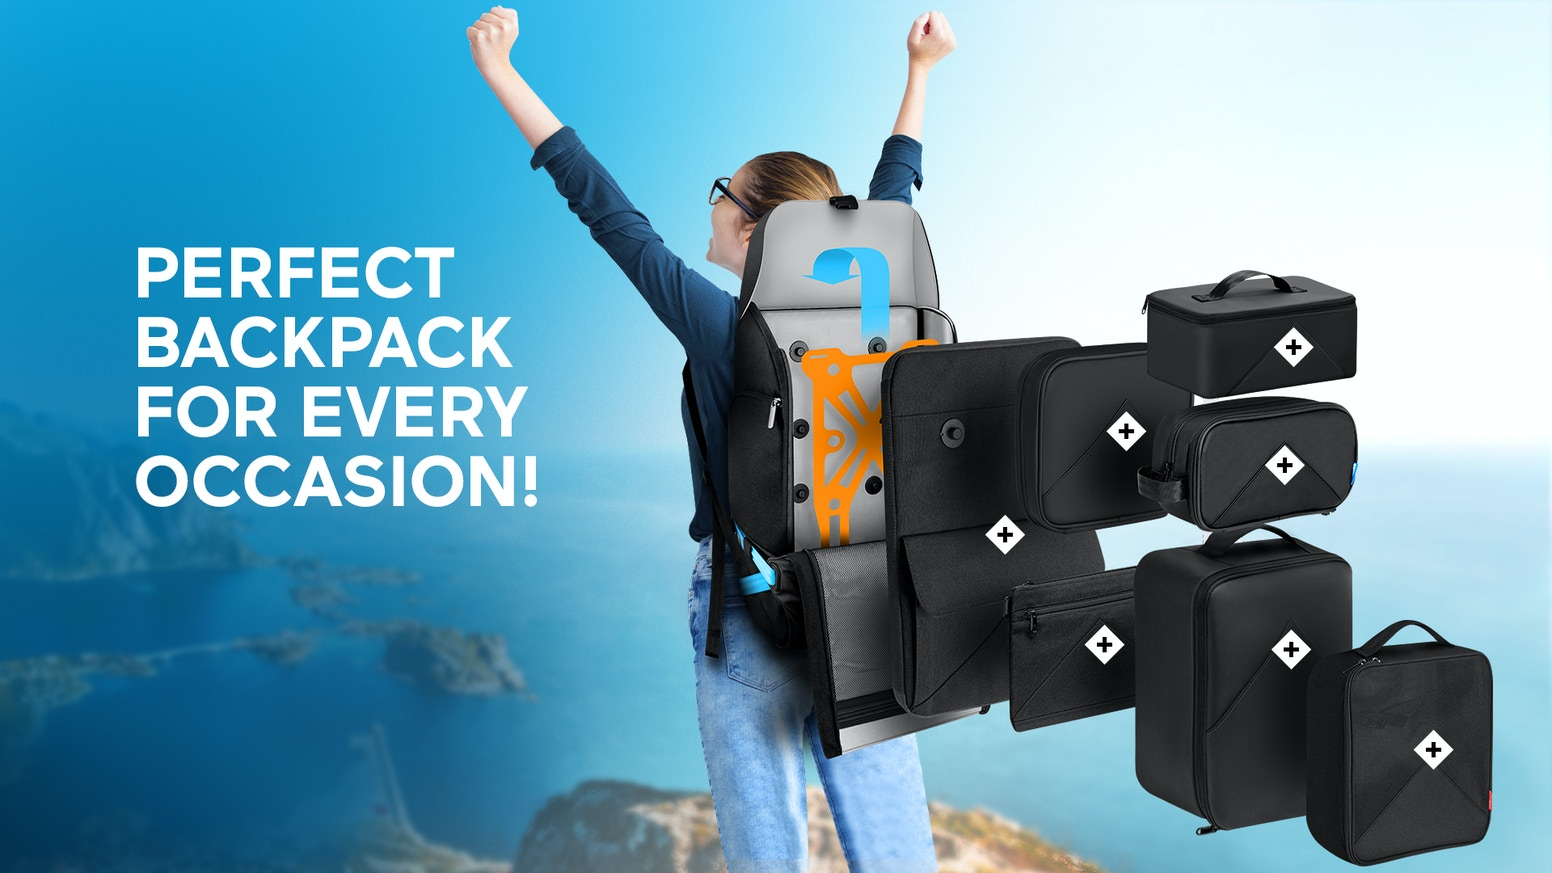 Xpedition-The Only PERFECTLY Balanced Backpack For Your Life